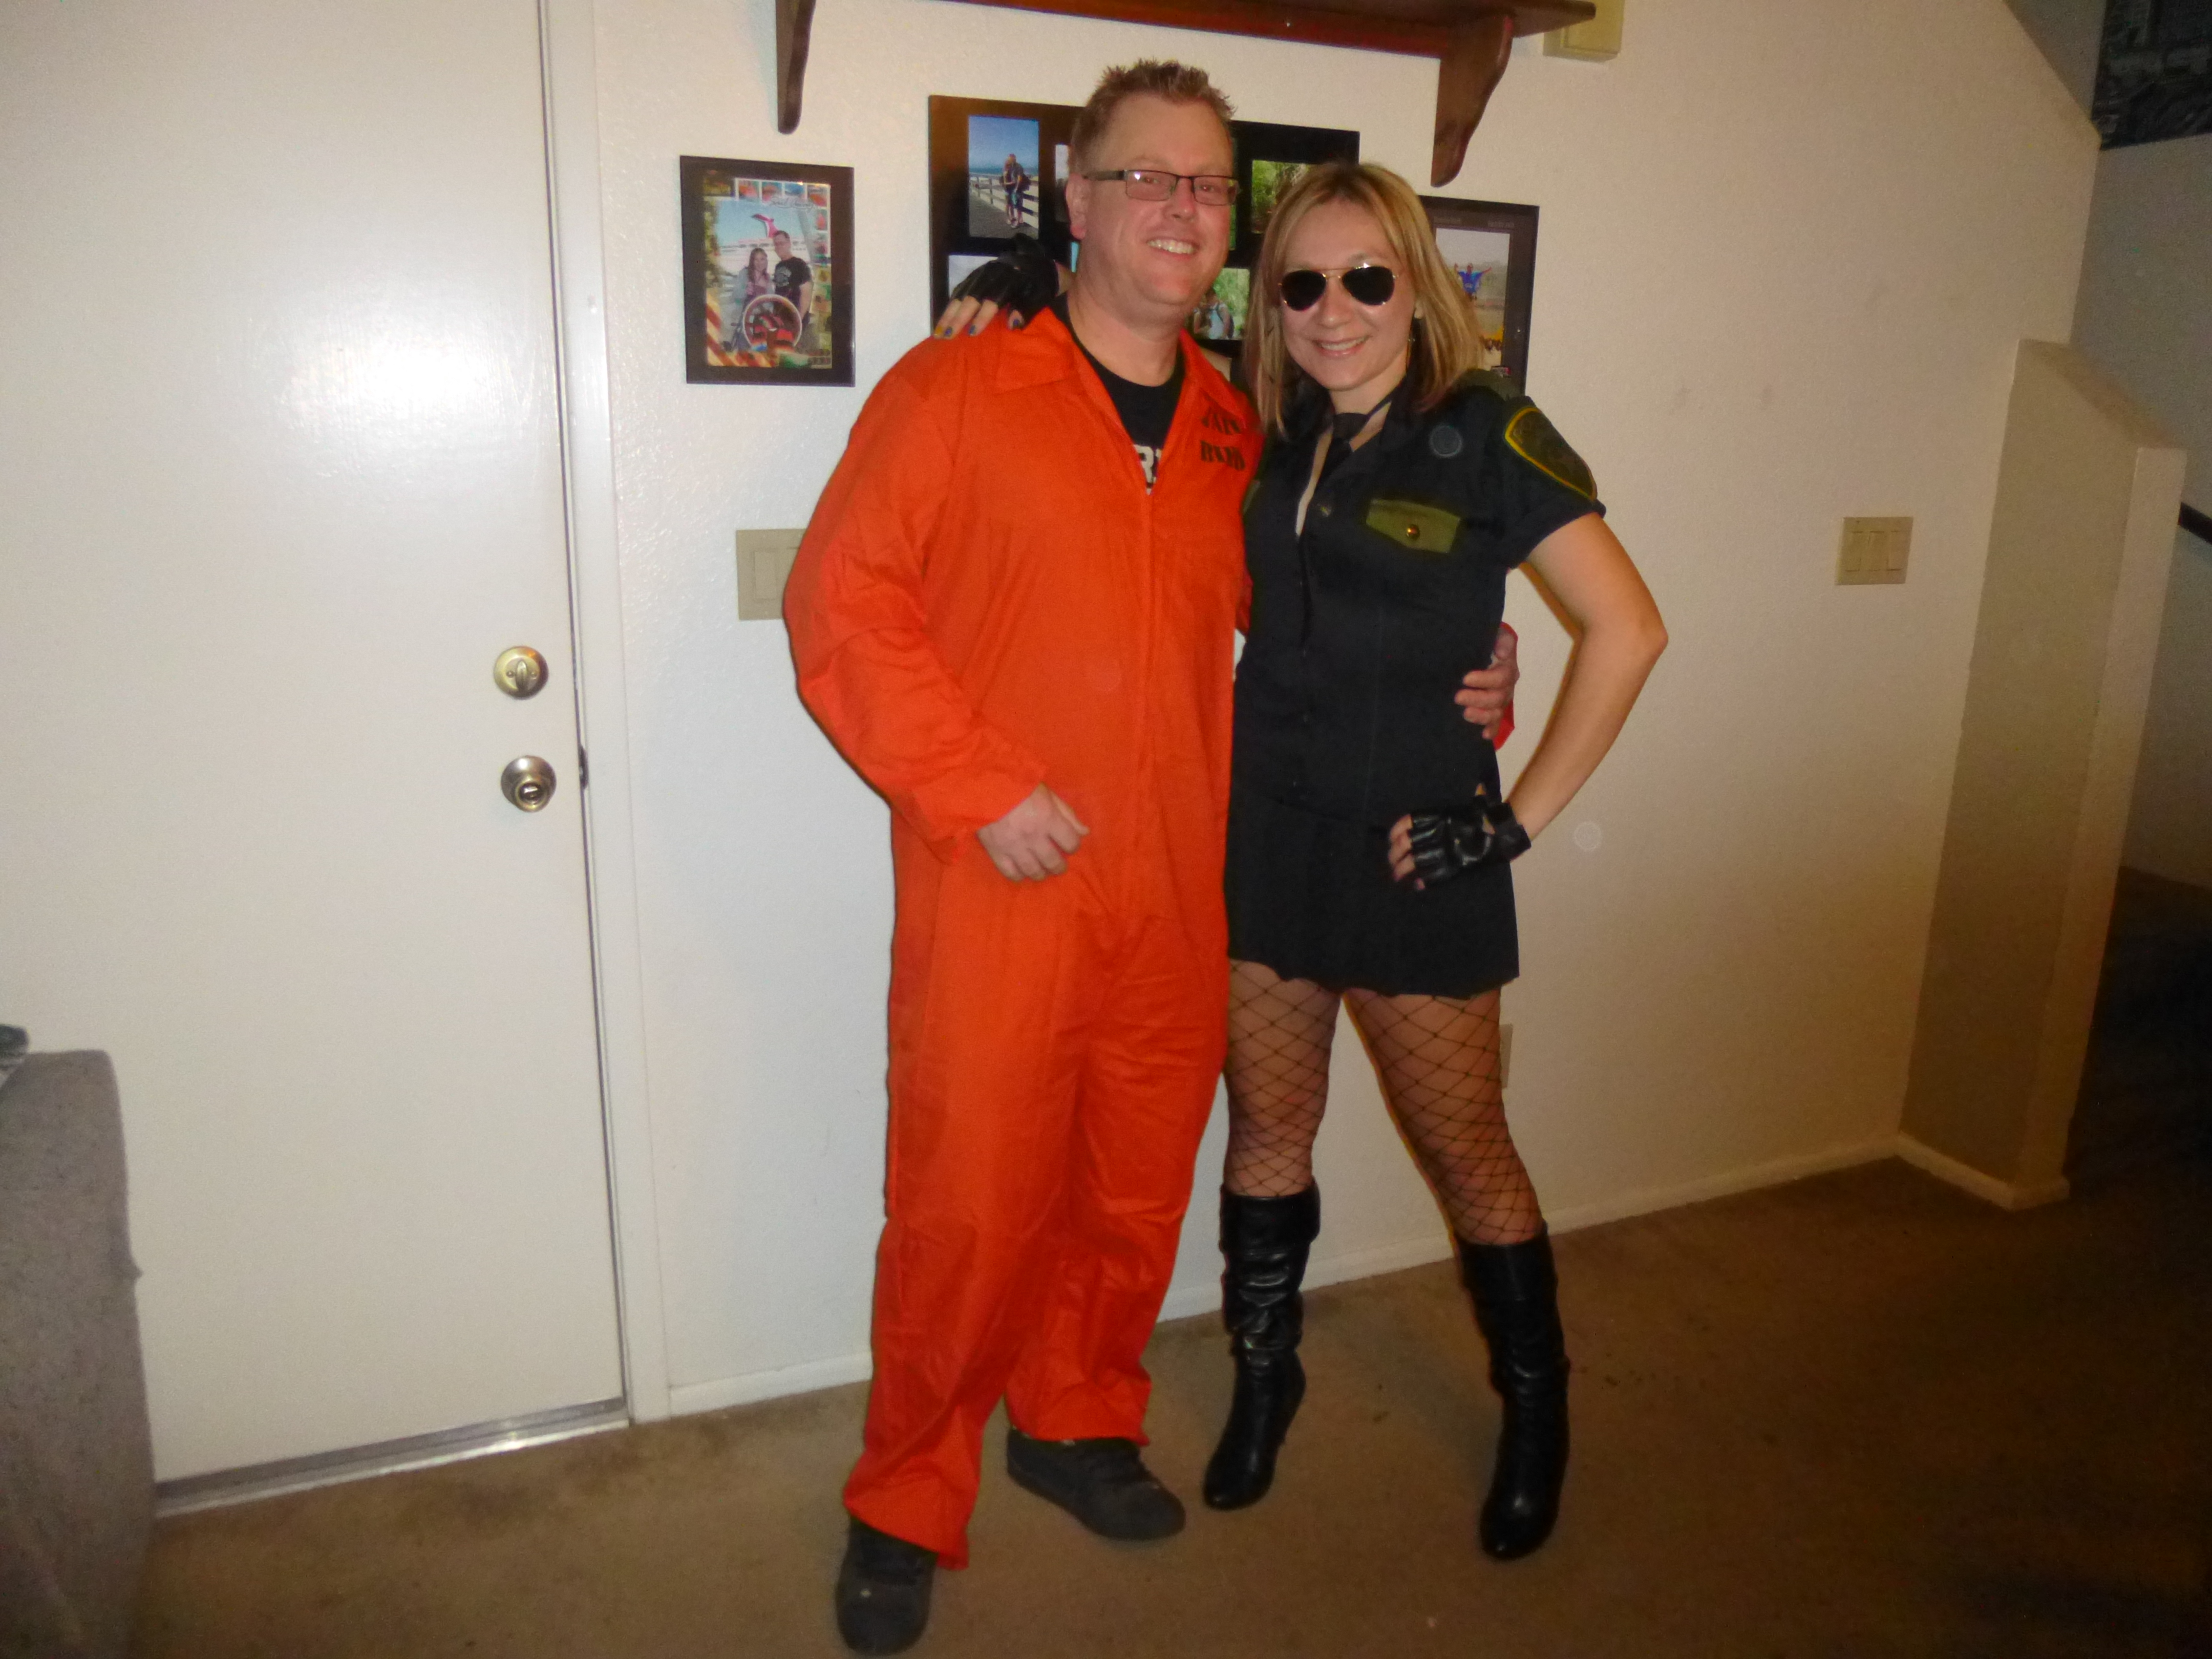 Craig and I went as cop and inmate. This costume is actually from 2008 we just didnu0027t feel like spending a ton of money and time on a costume this year. it ... & Happyu2026 « Unstoppable